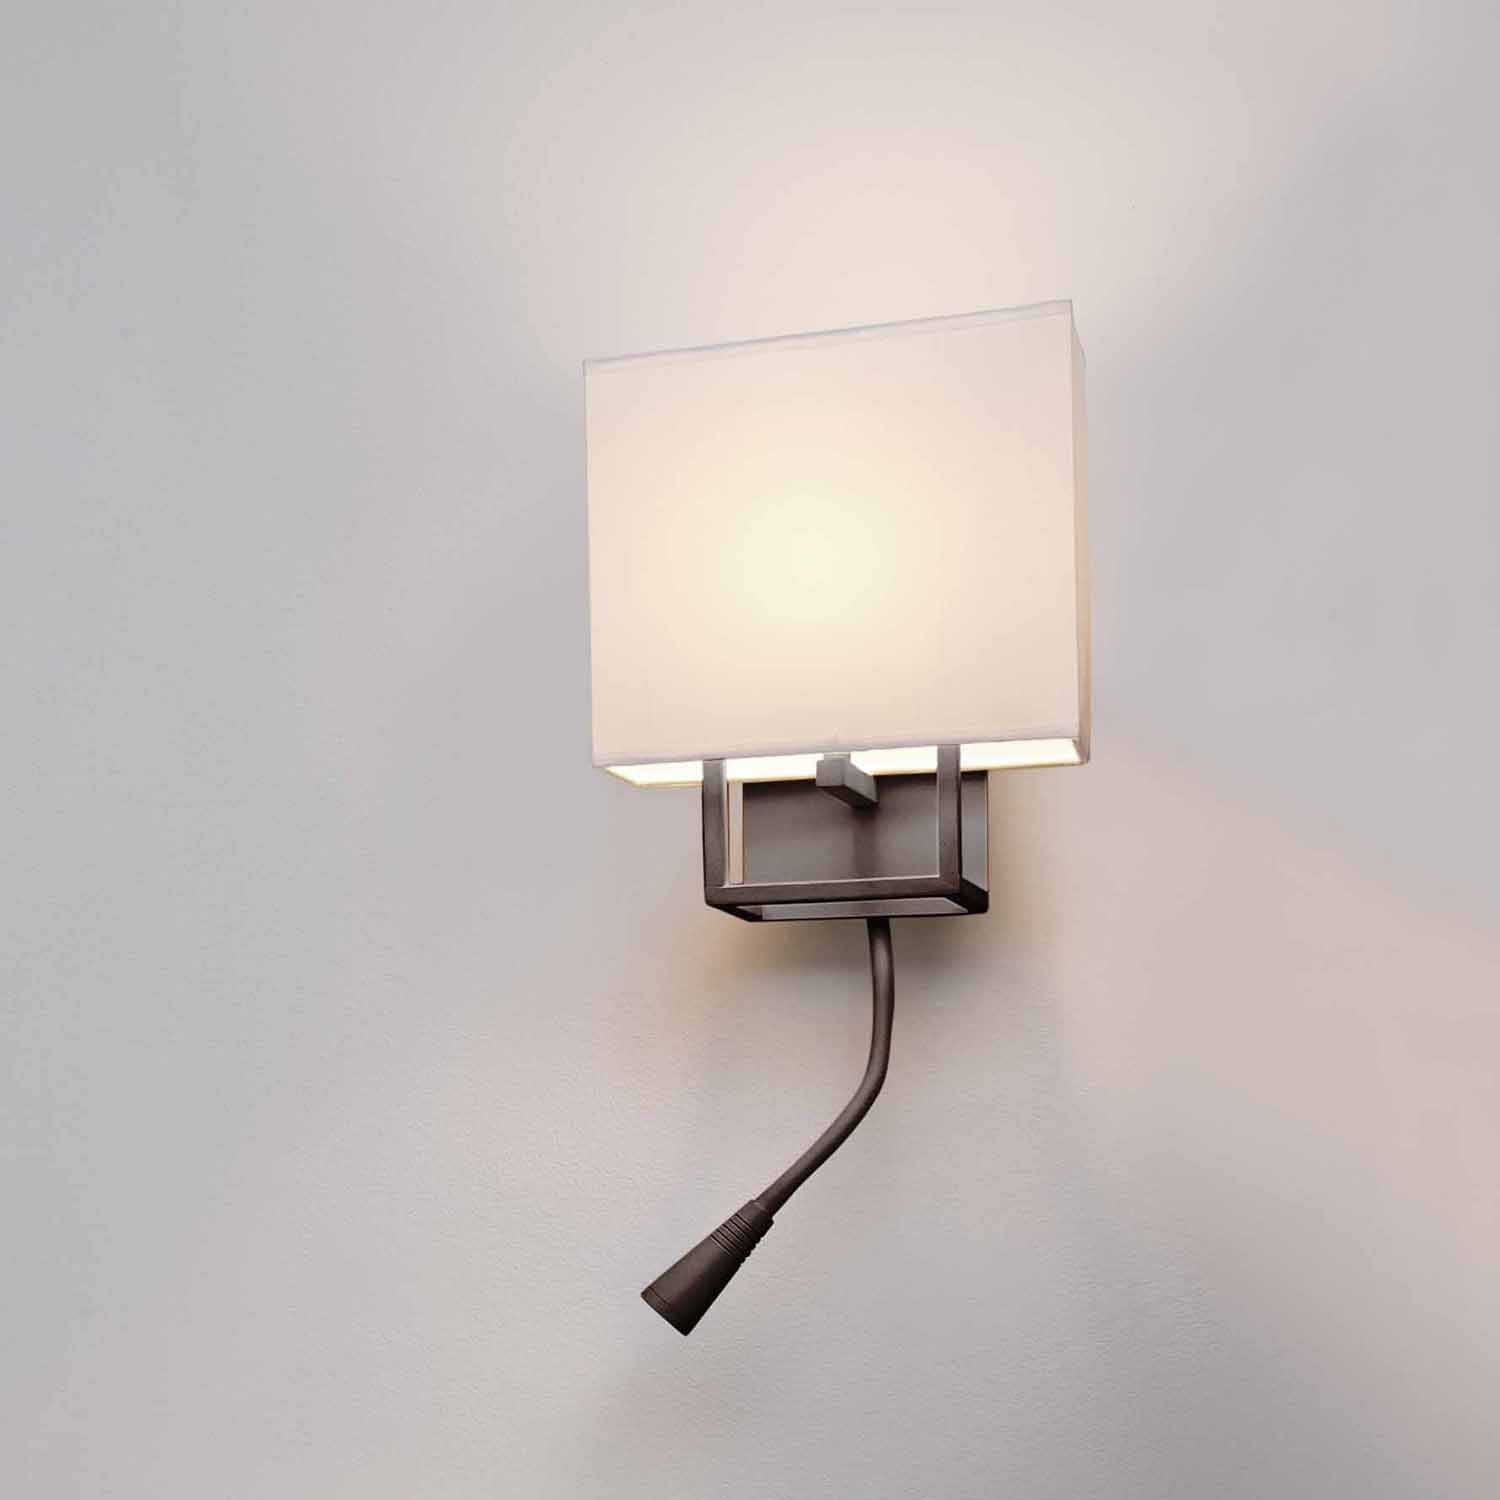 Applique Tete De Lit Salva Applique Marron Liseuse Led